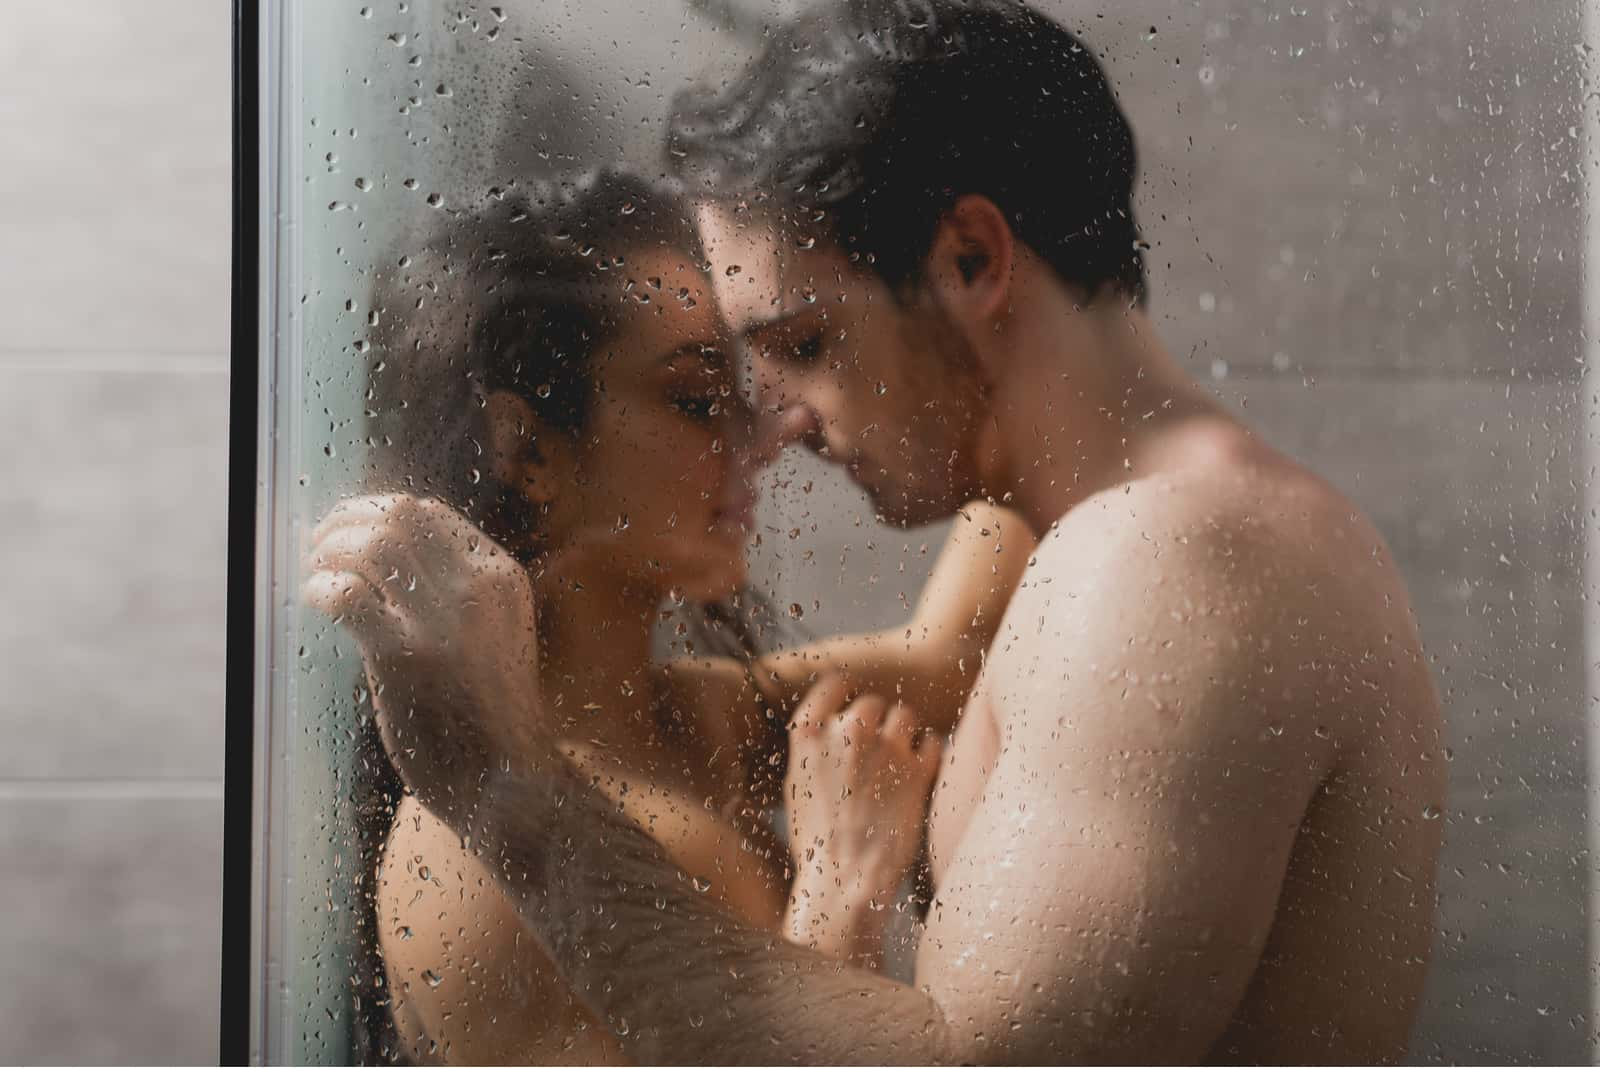 the couple has sex in the shower